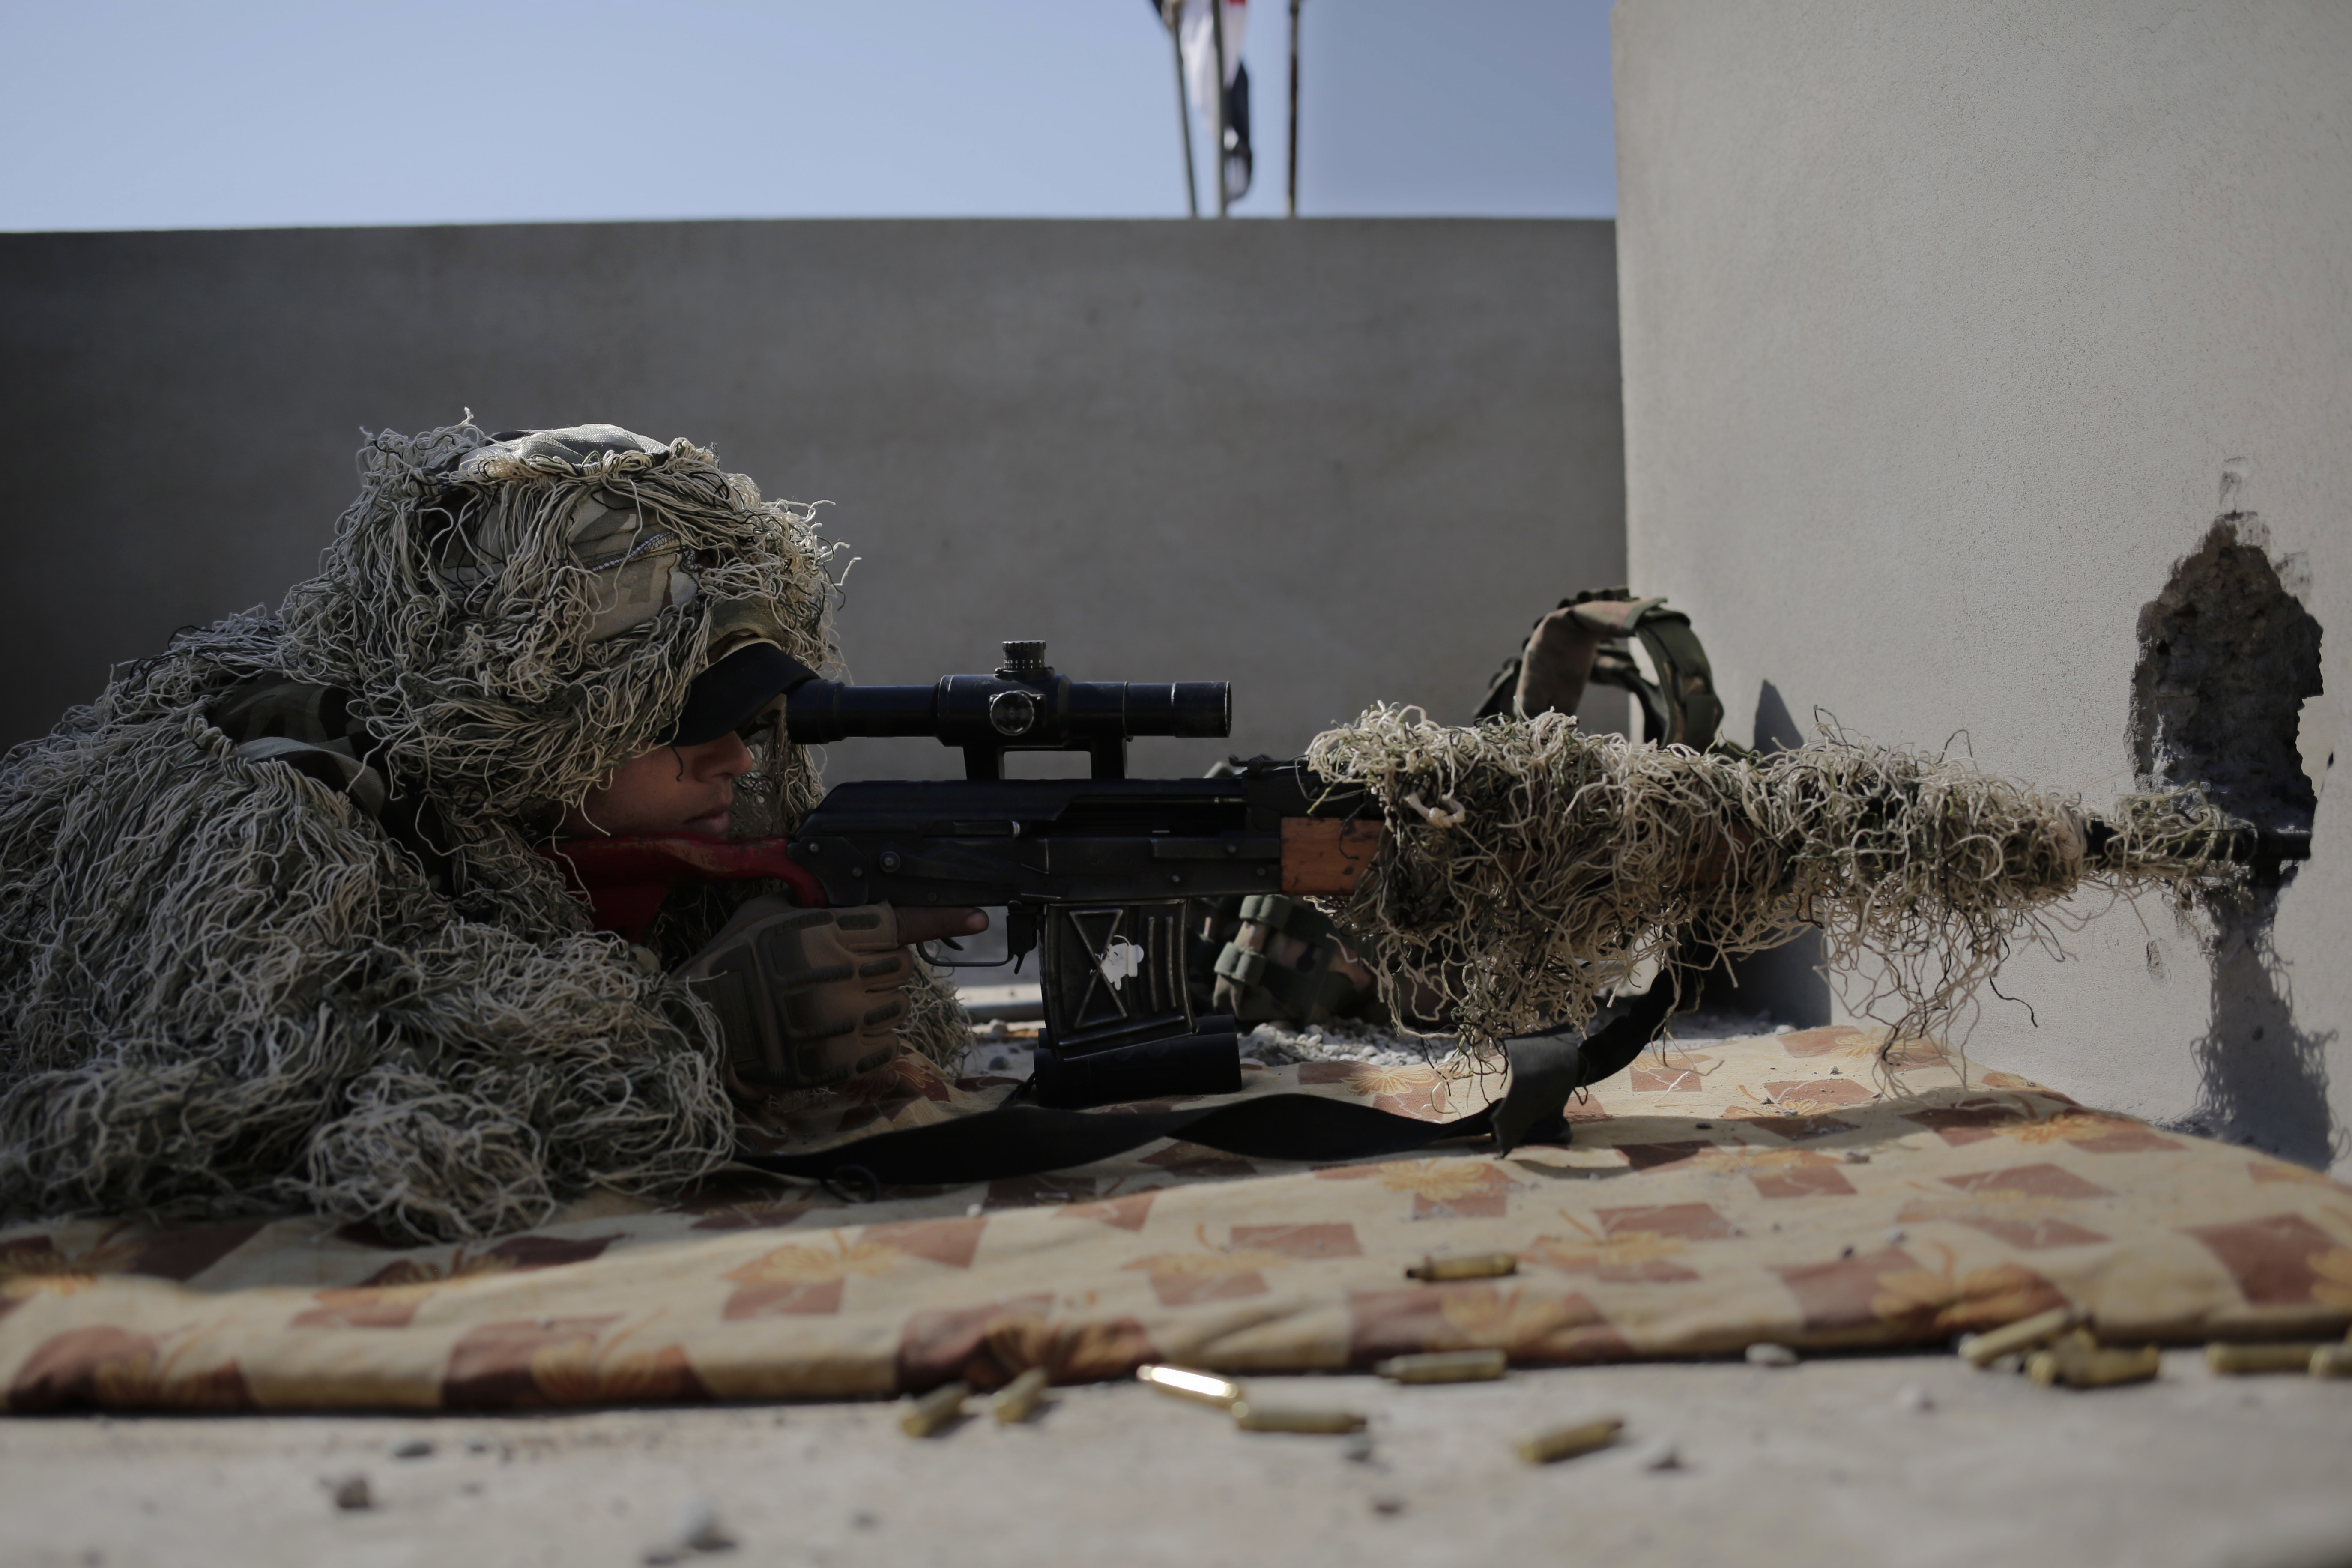 A sniper with the Iraqi federal police aims at an ISIS position from the rooftop of a house in the town of Abu Saif, on Feb. 22, 2017. (AP Photo/Bram Janssen)